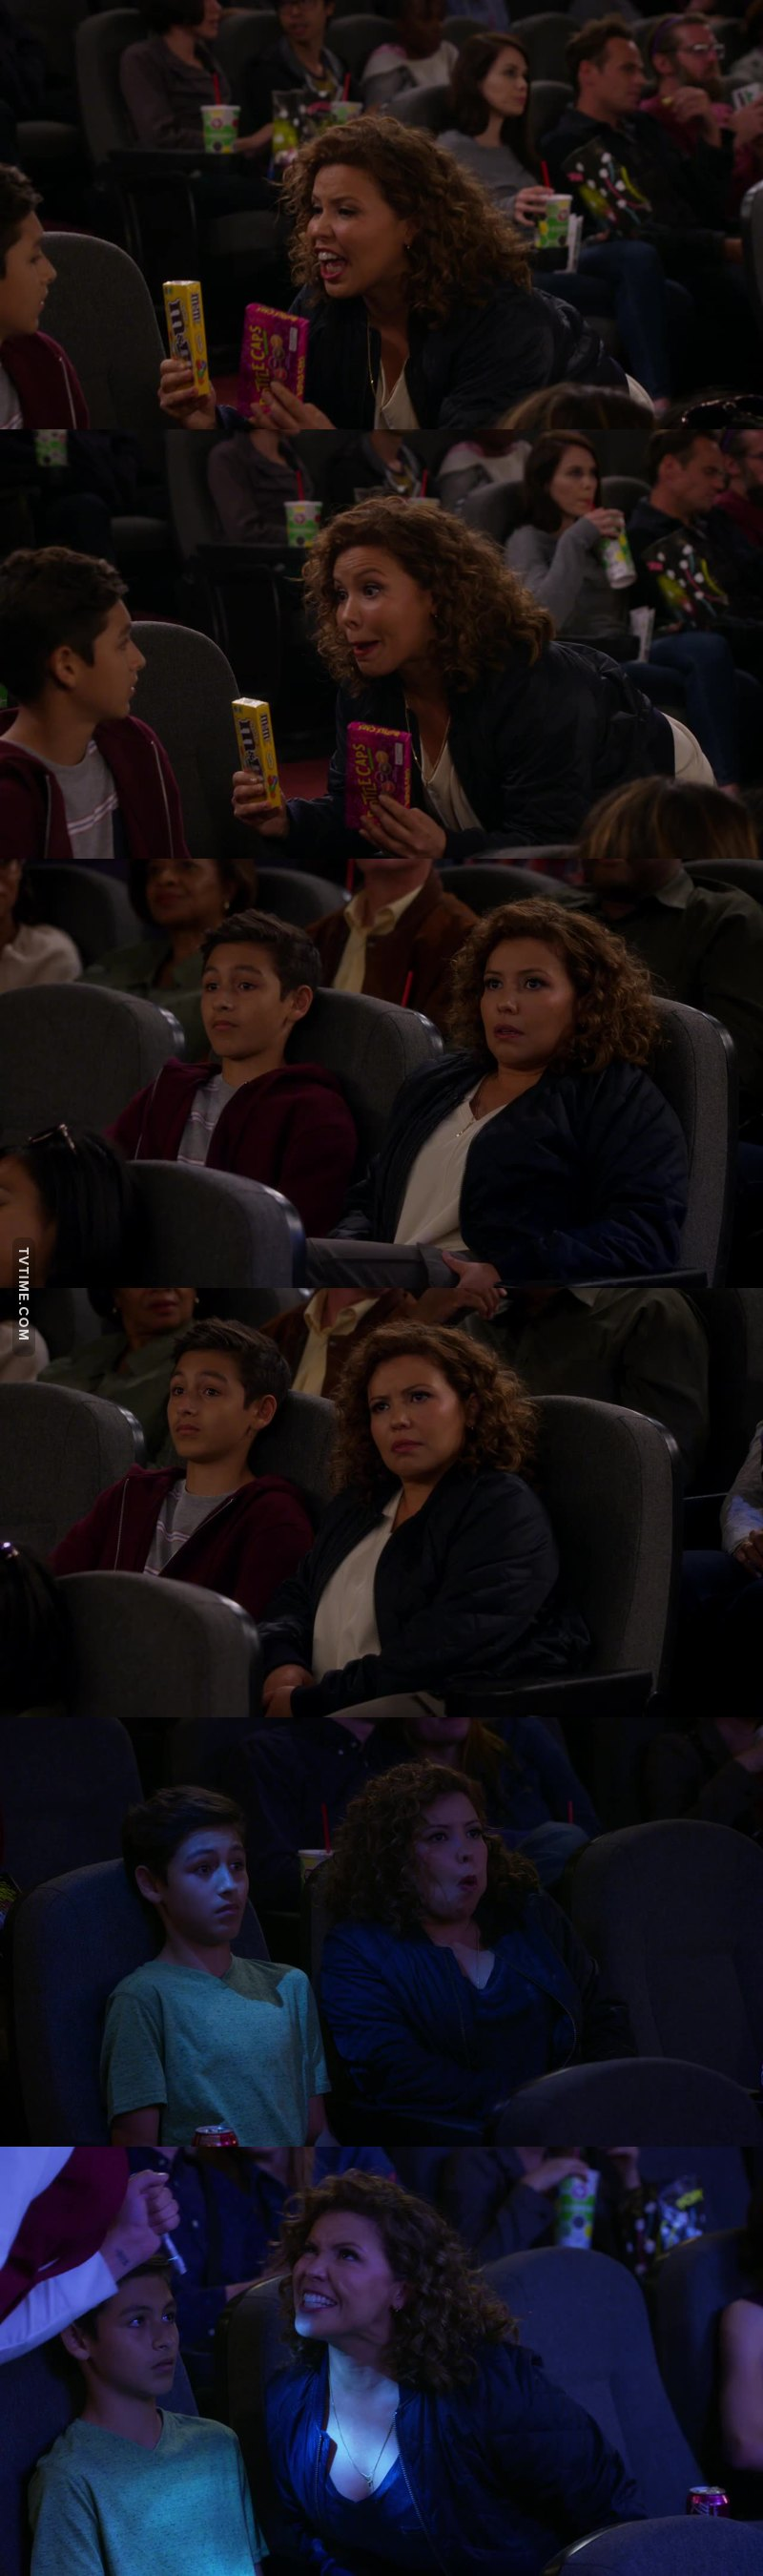 Penelope's faces thoooo!! I love her so much xD